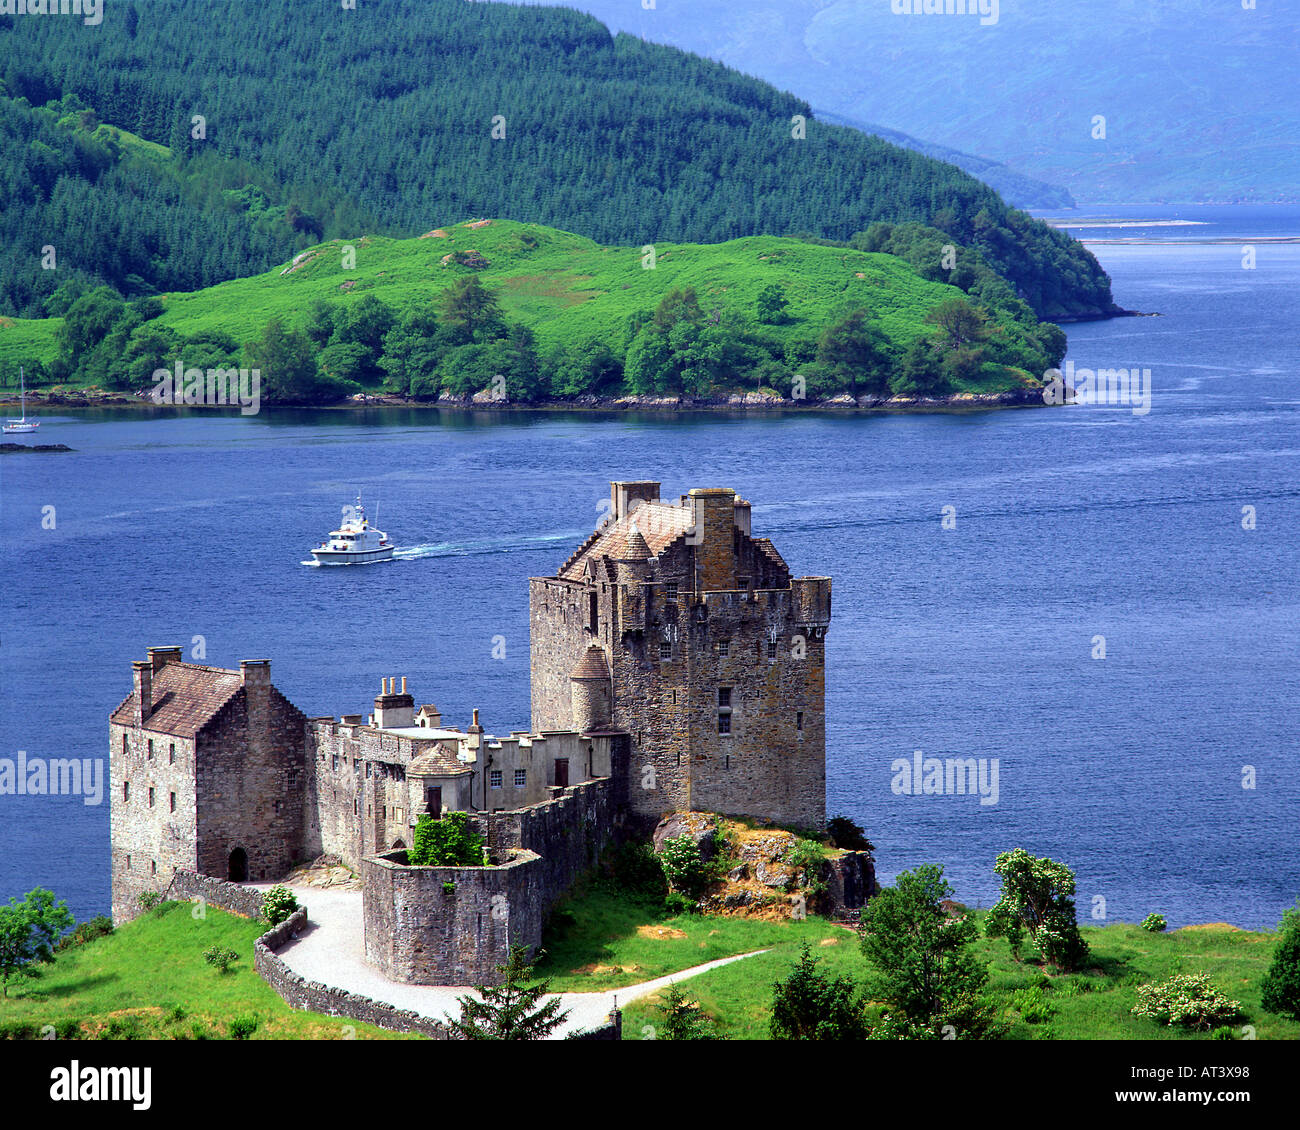 GB - SCOTLAND:  Eilean Donan Castle in the Highlands - Stock Image